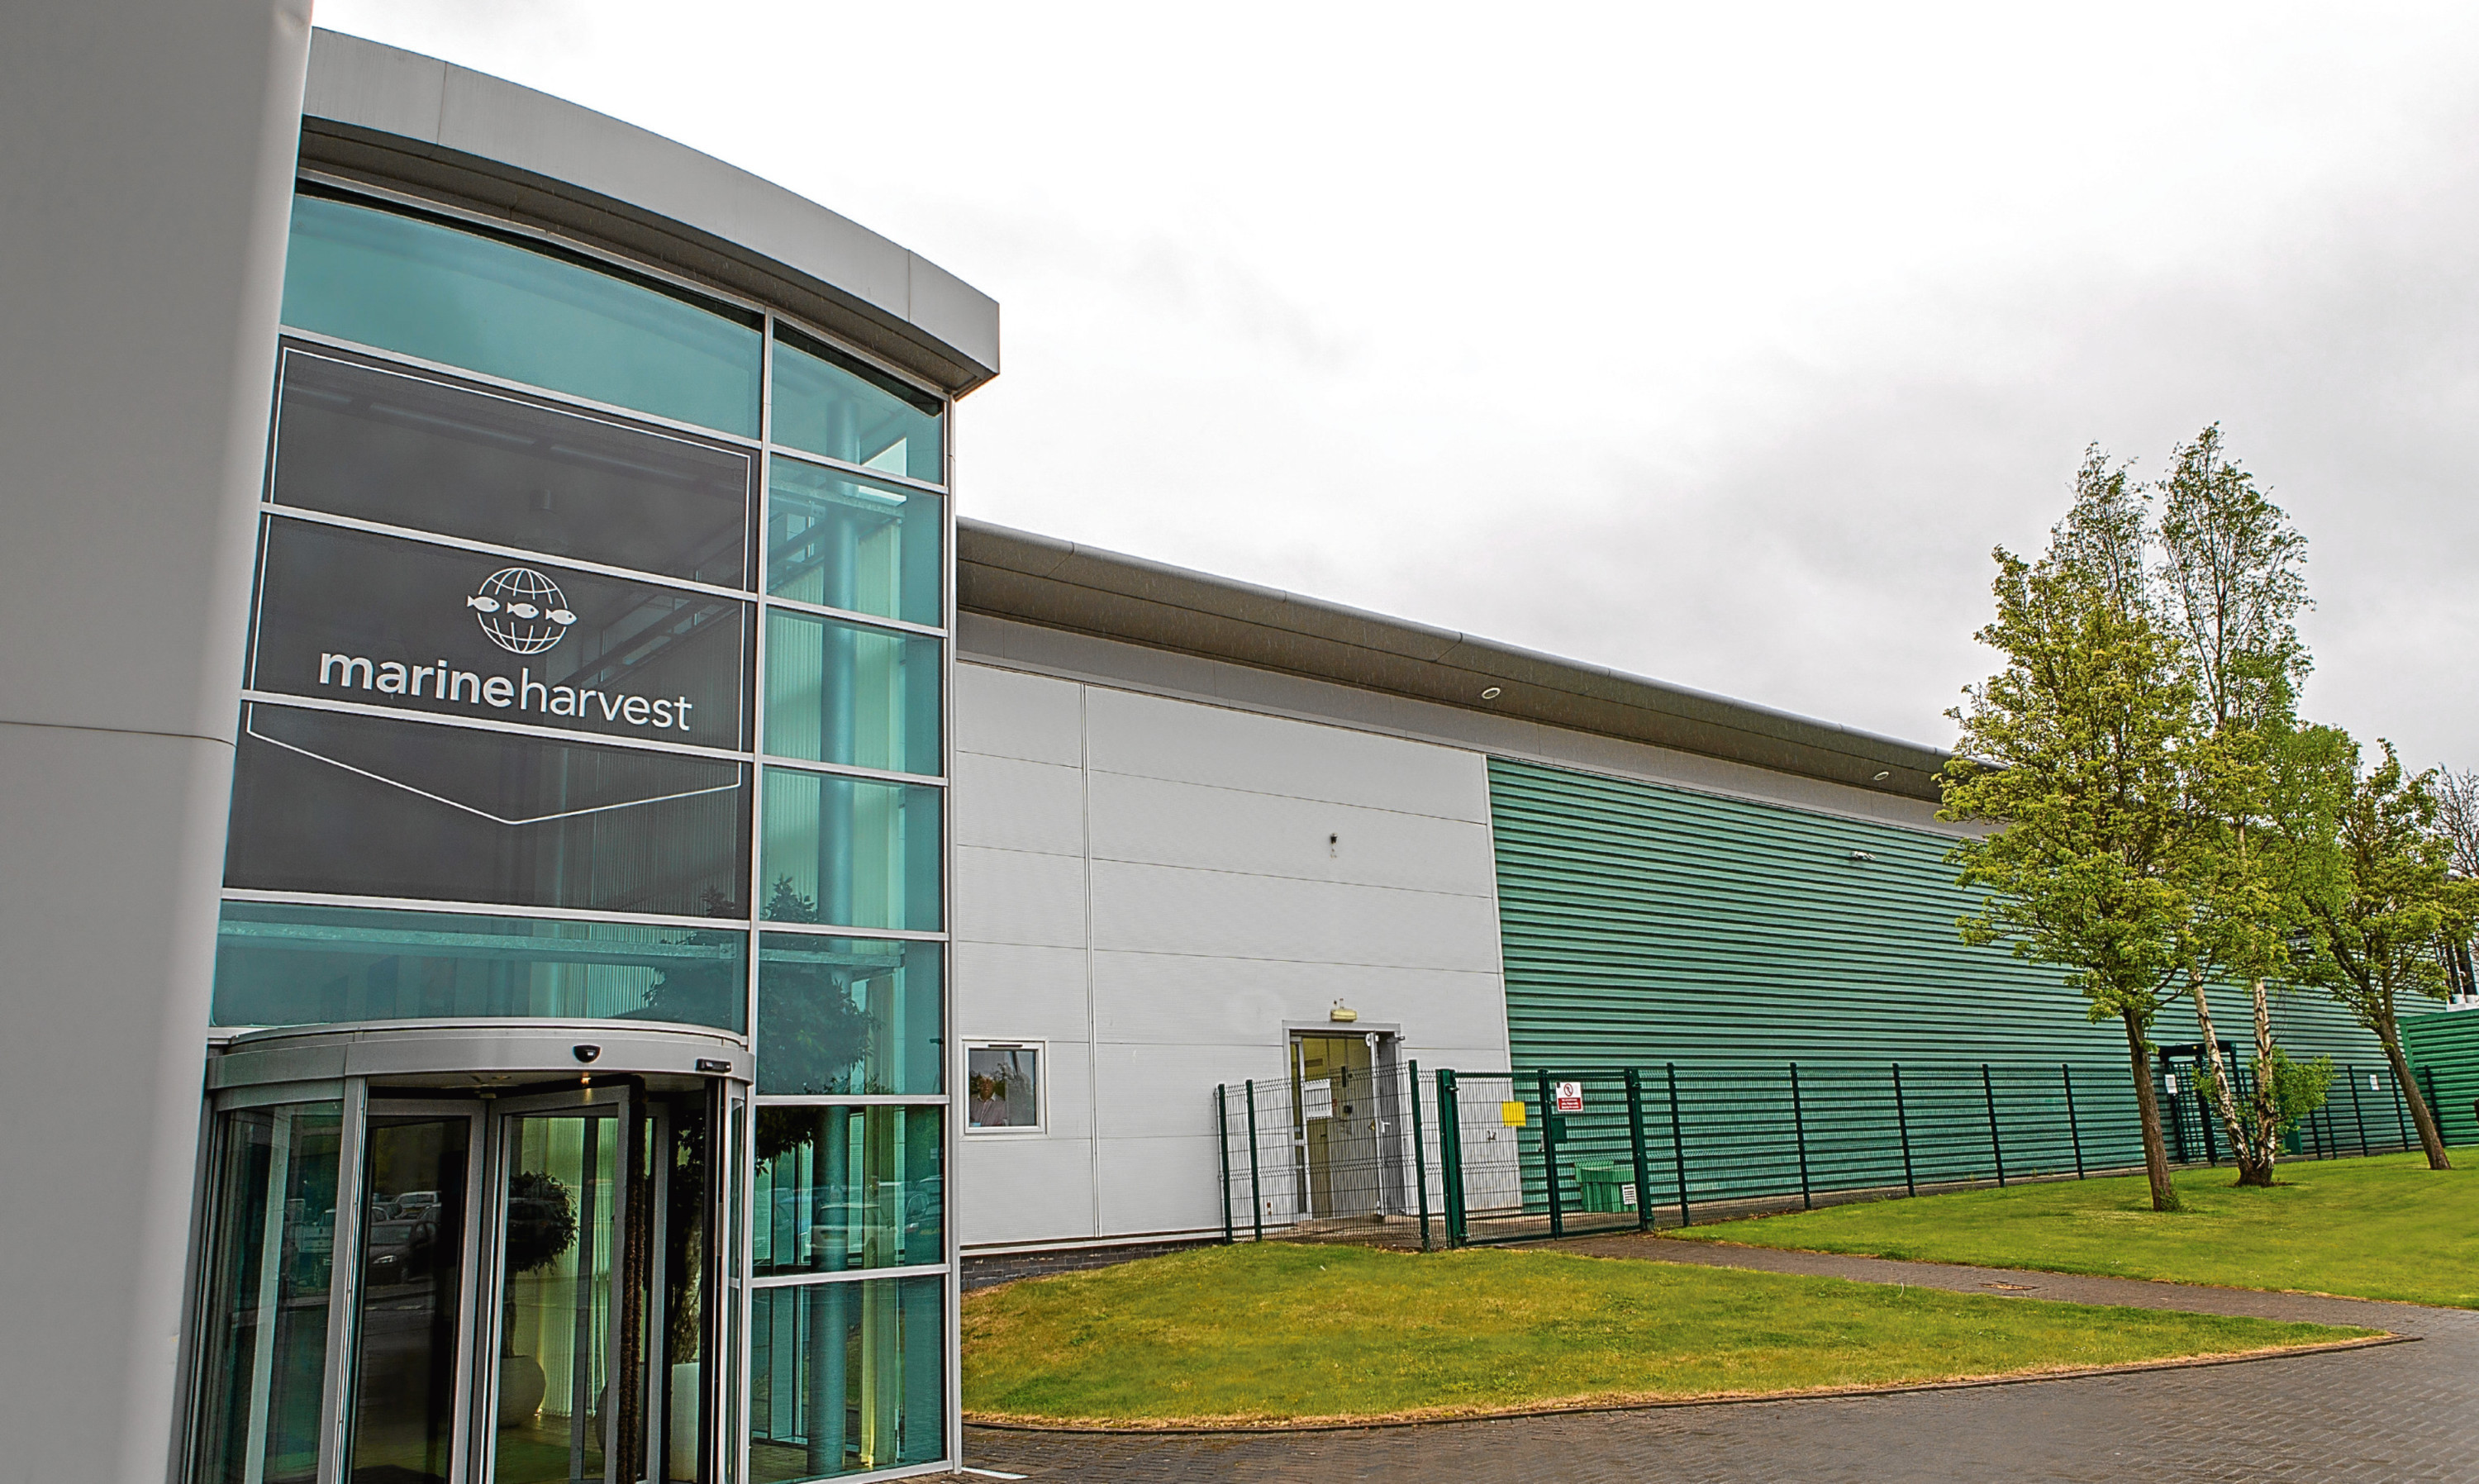 Marine Harvest's base at Admiralty Park in Rosyth